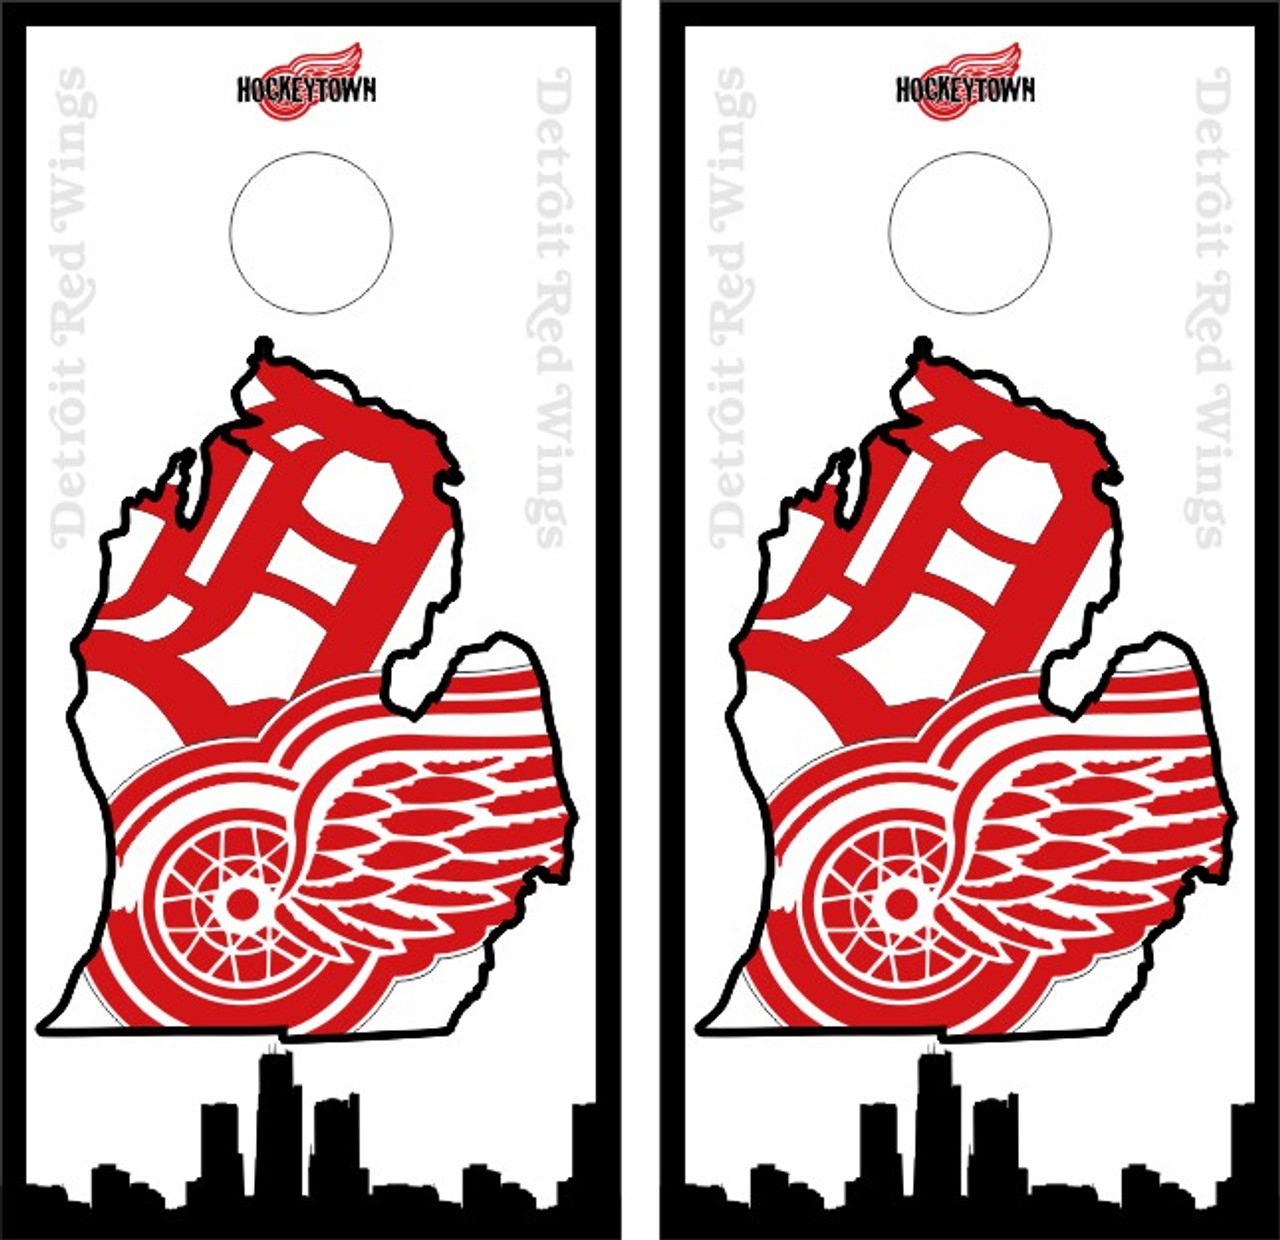 Why did white nationalists use the Detroit Red Wings logo?